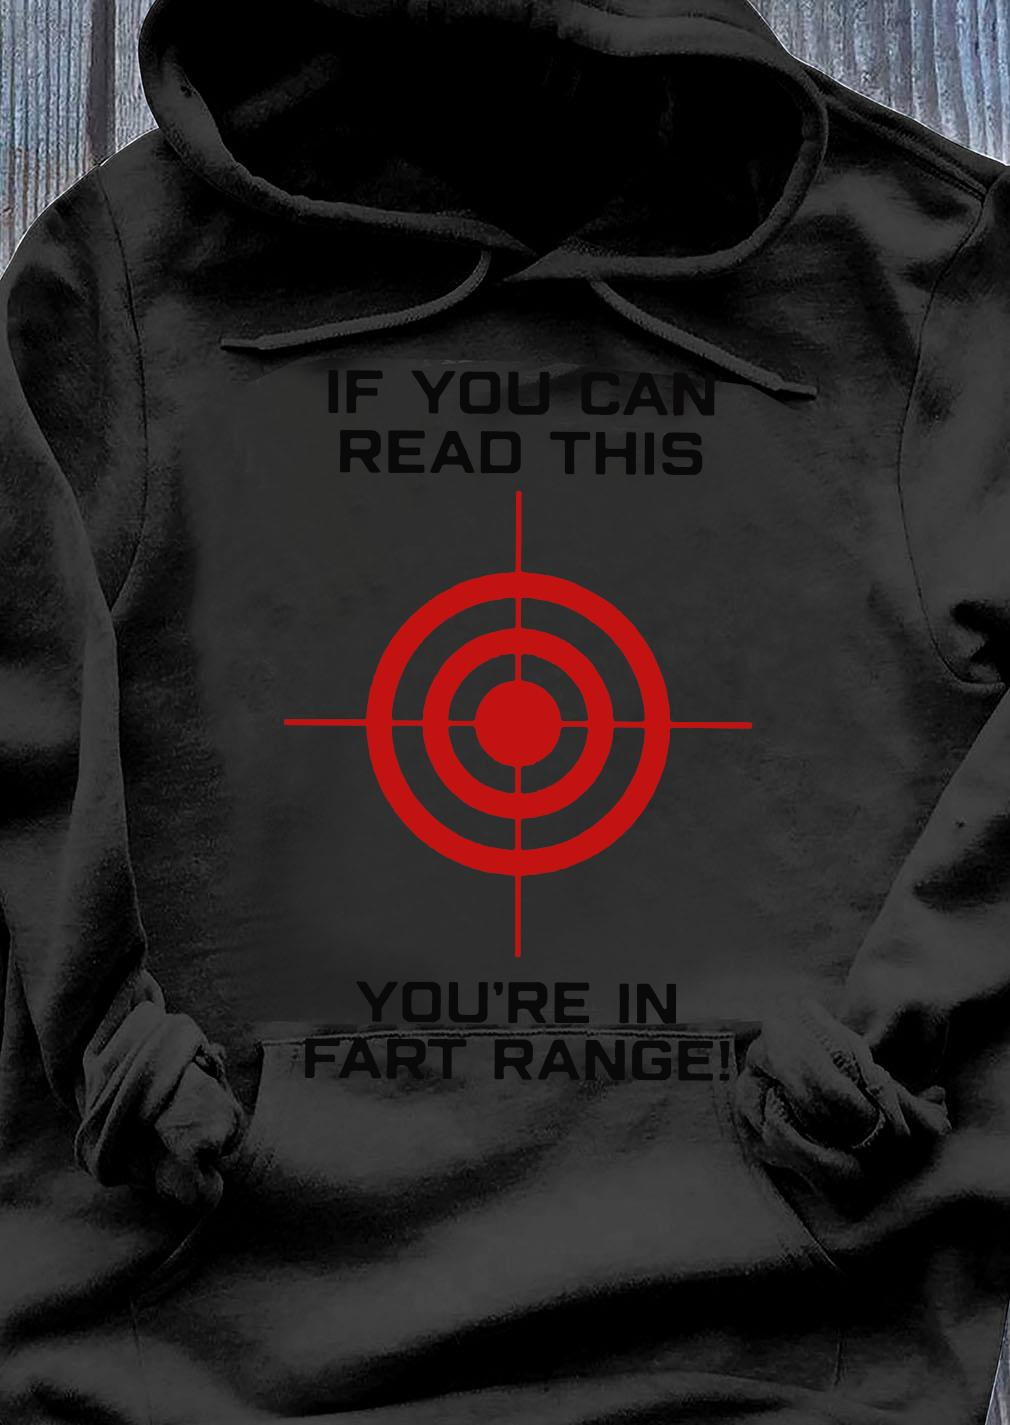 If You Can Read This You're In Fart Range Hubie Halloween Shirt Hoodie